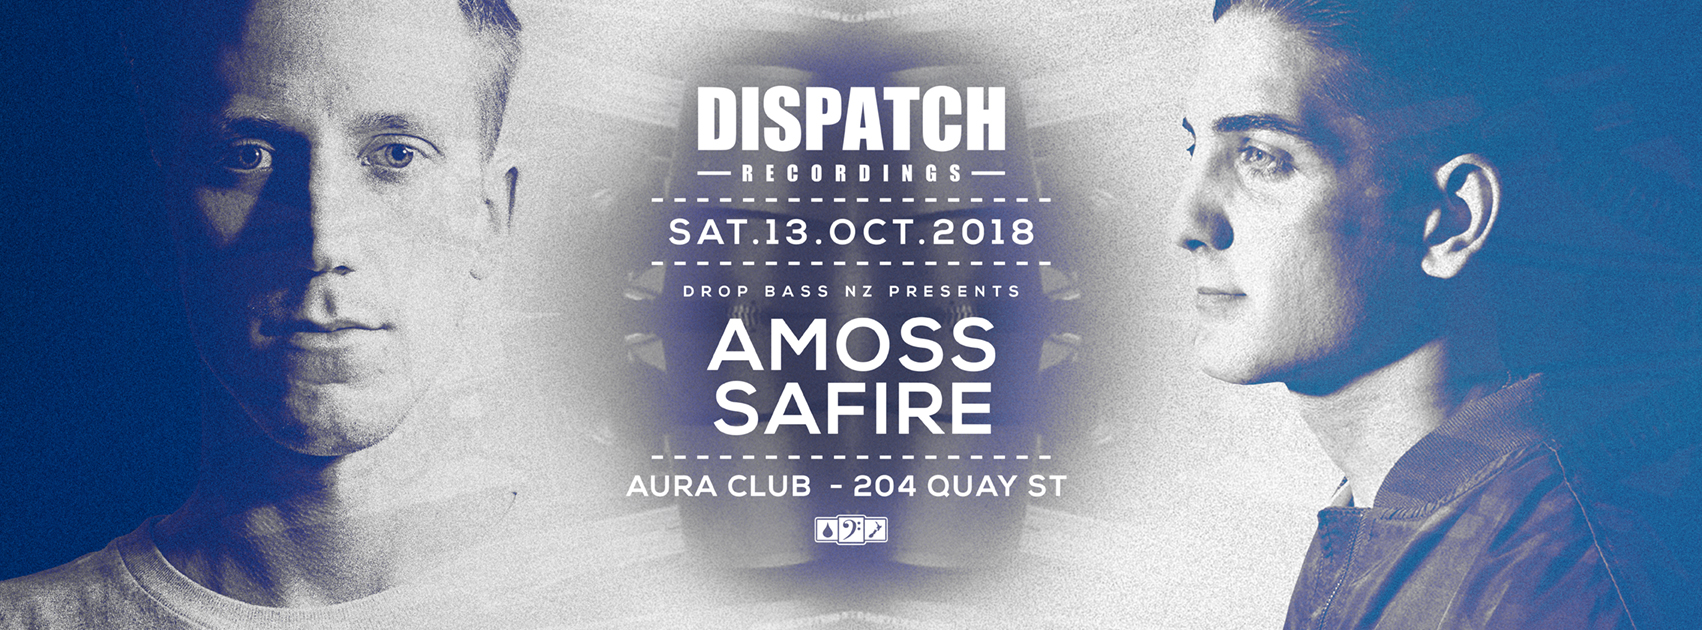 Dispatch Recordings AKL  Ft Amoss UK and Safire AU